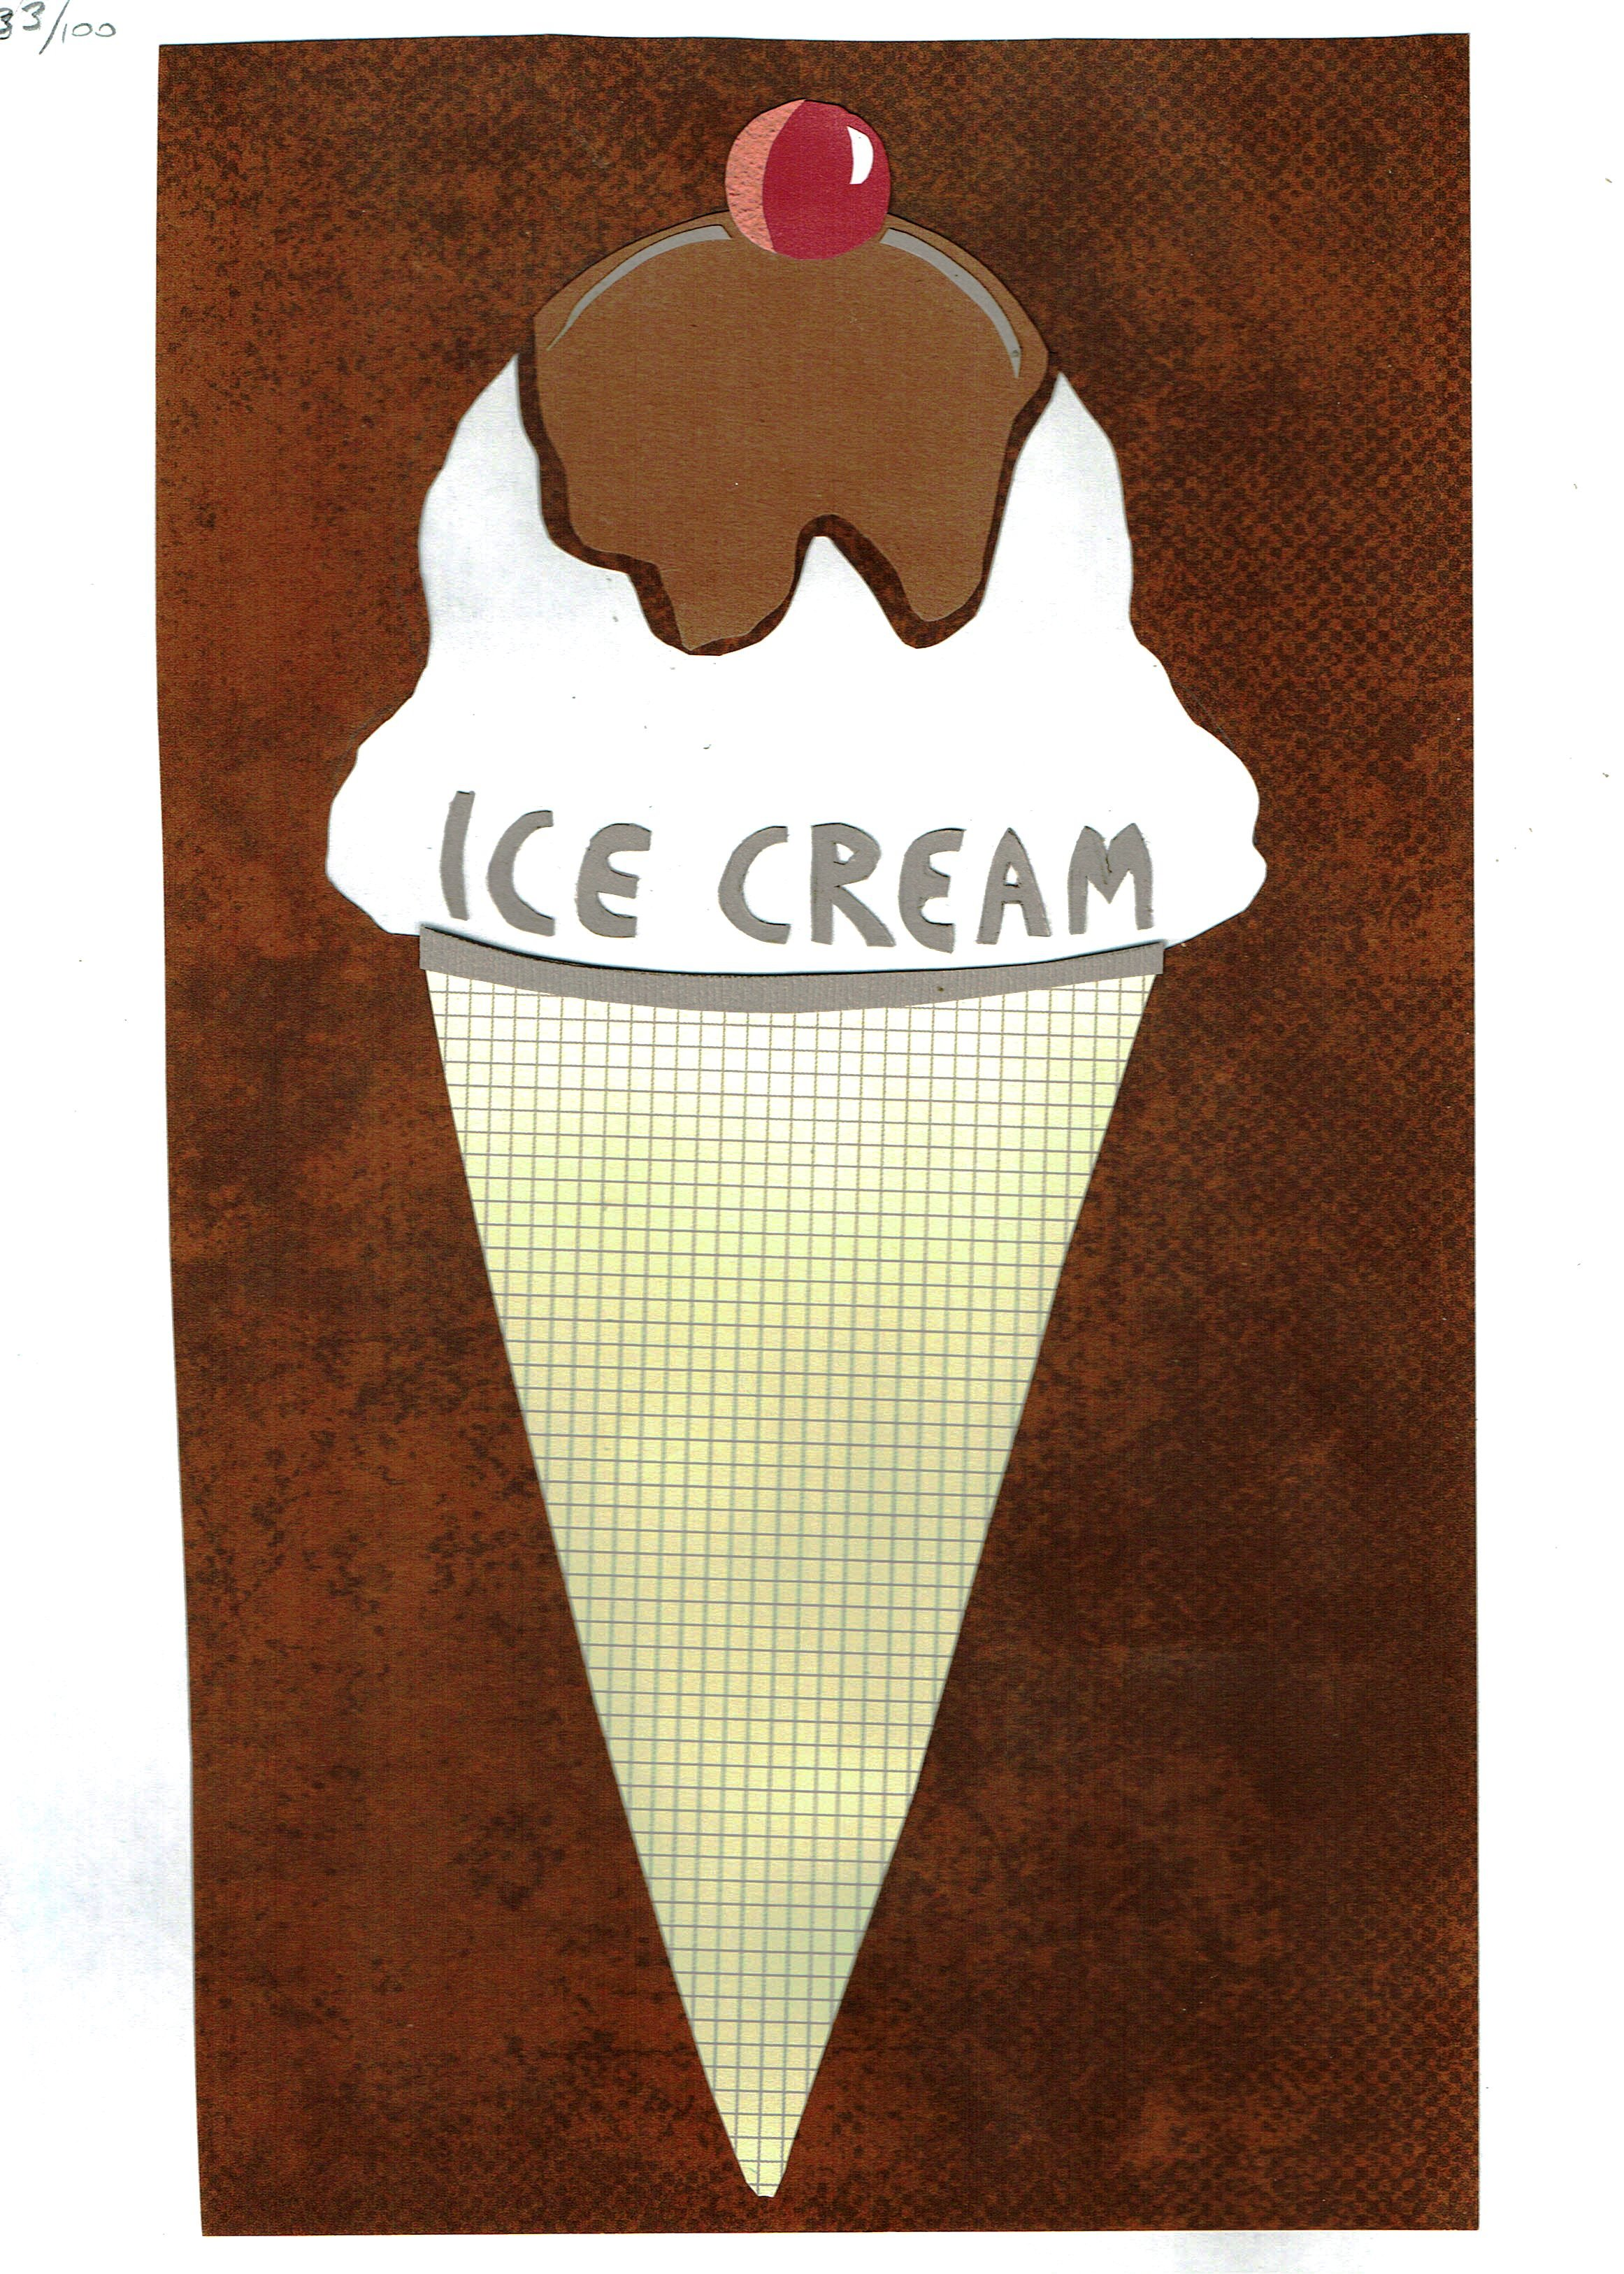 Day 33 - Ice Cream